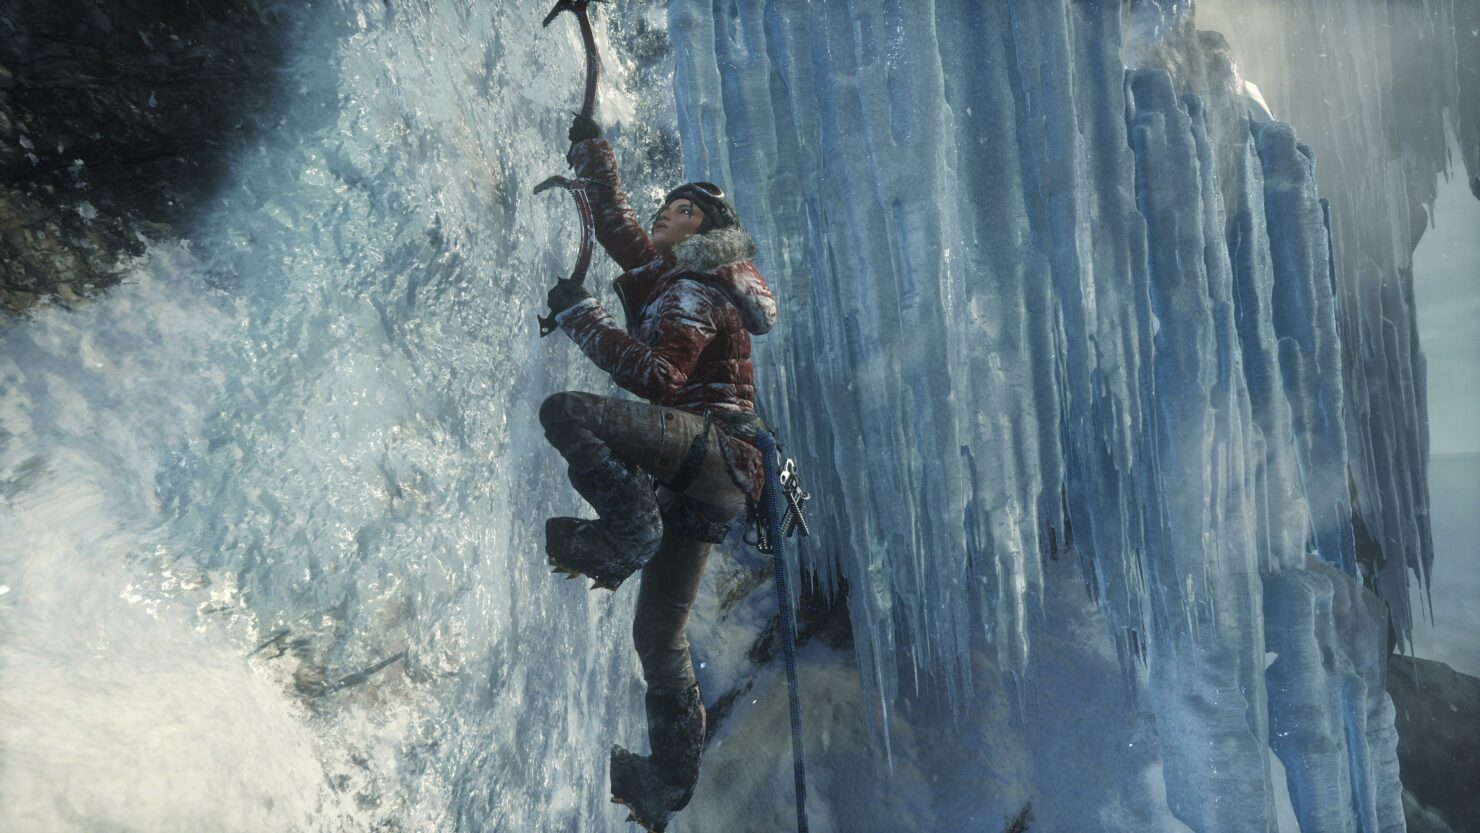 rise-of-the-tomb-raider_pc_4k_pcmr_13